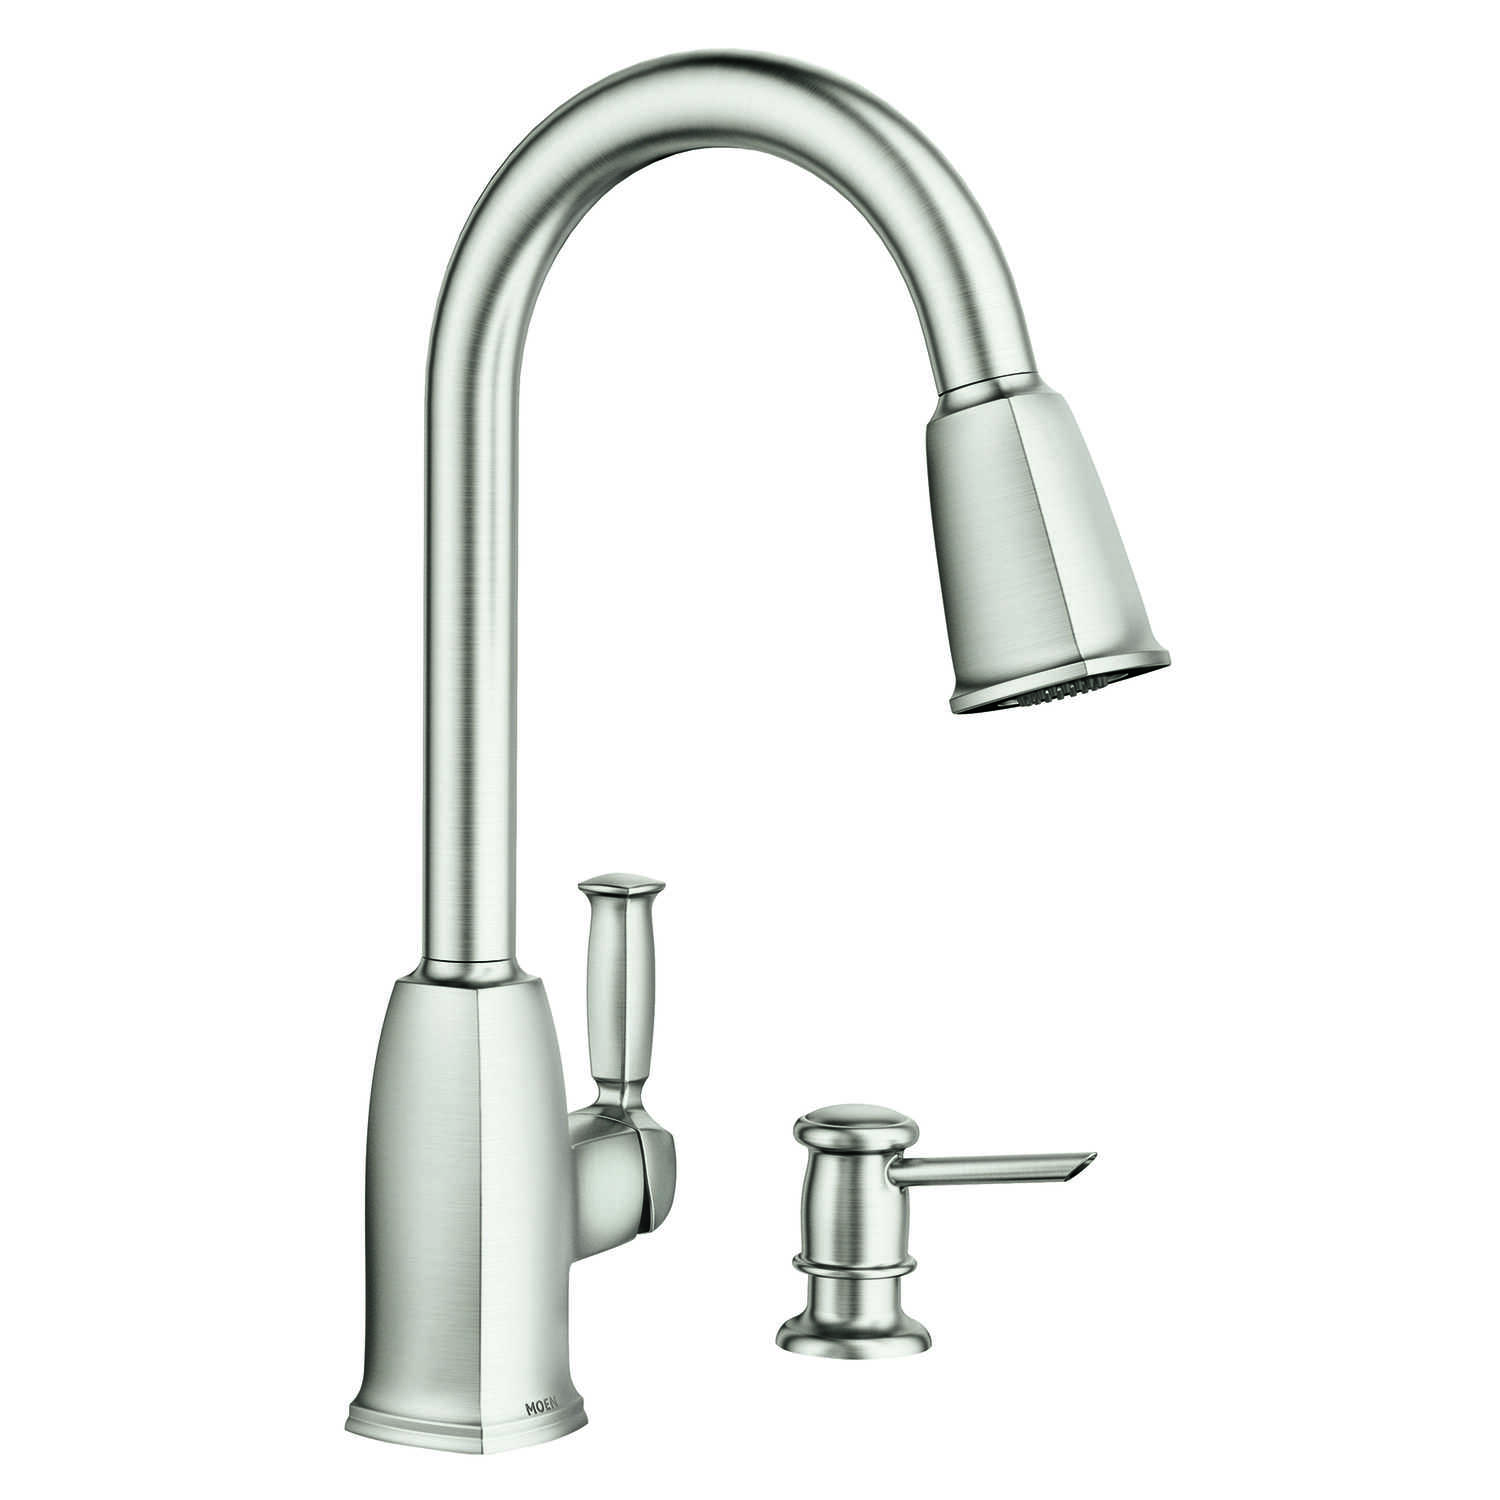 Moen  Wellsley  Pulldown Kitchen Faucet  Stainless Steel  One Handle